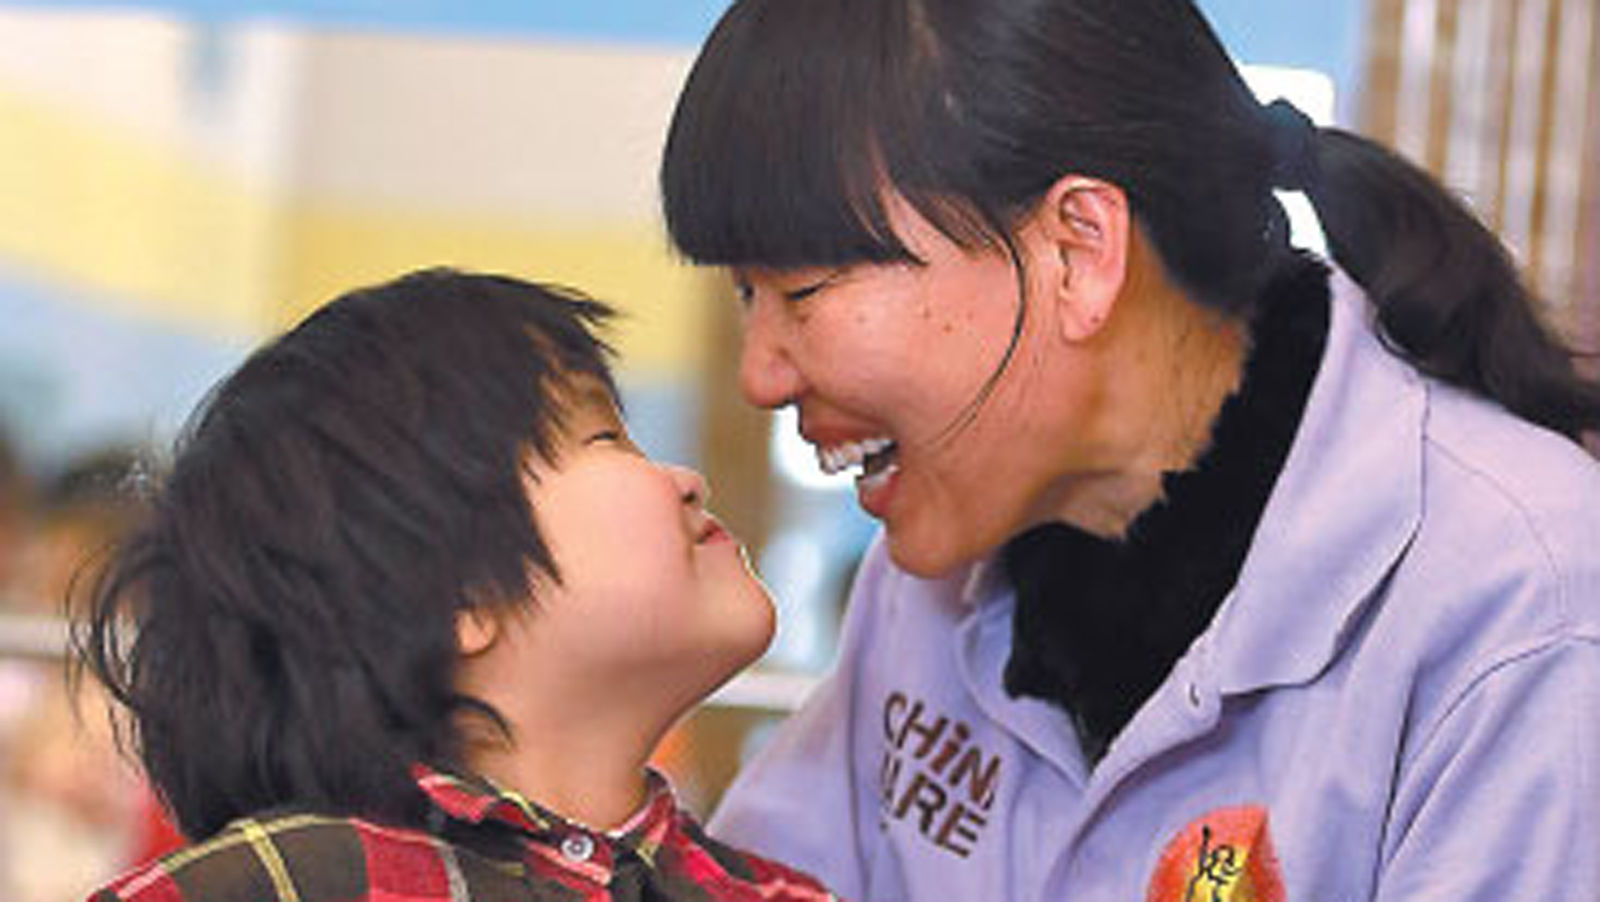 Liu Shan, director of the China Care Home in Beijing, has firsthand knowledge of the challenges facing 'institutionalized' children. Feng Yongbin / China Daily